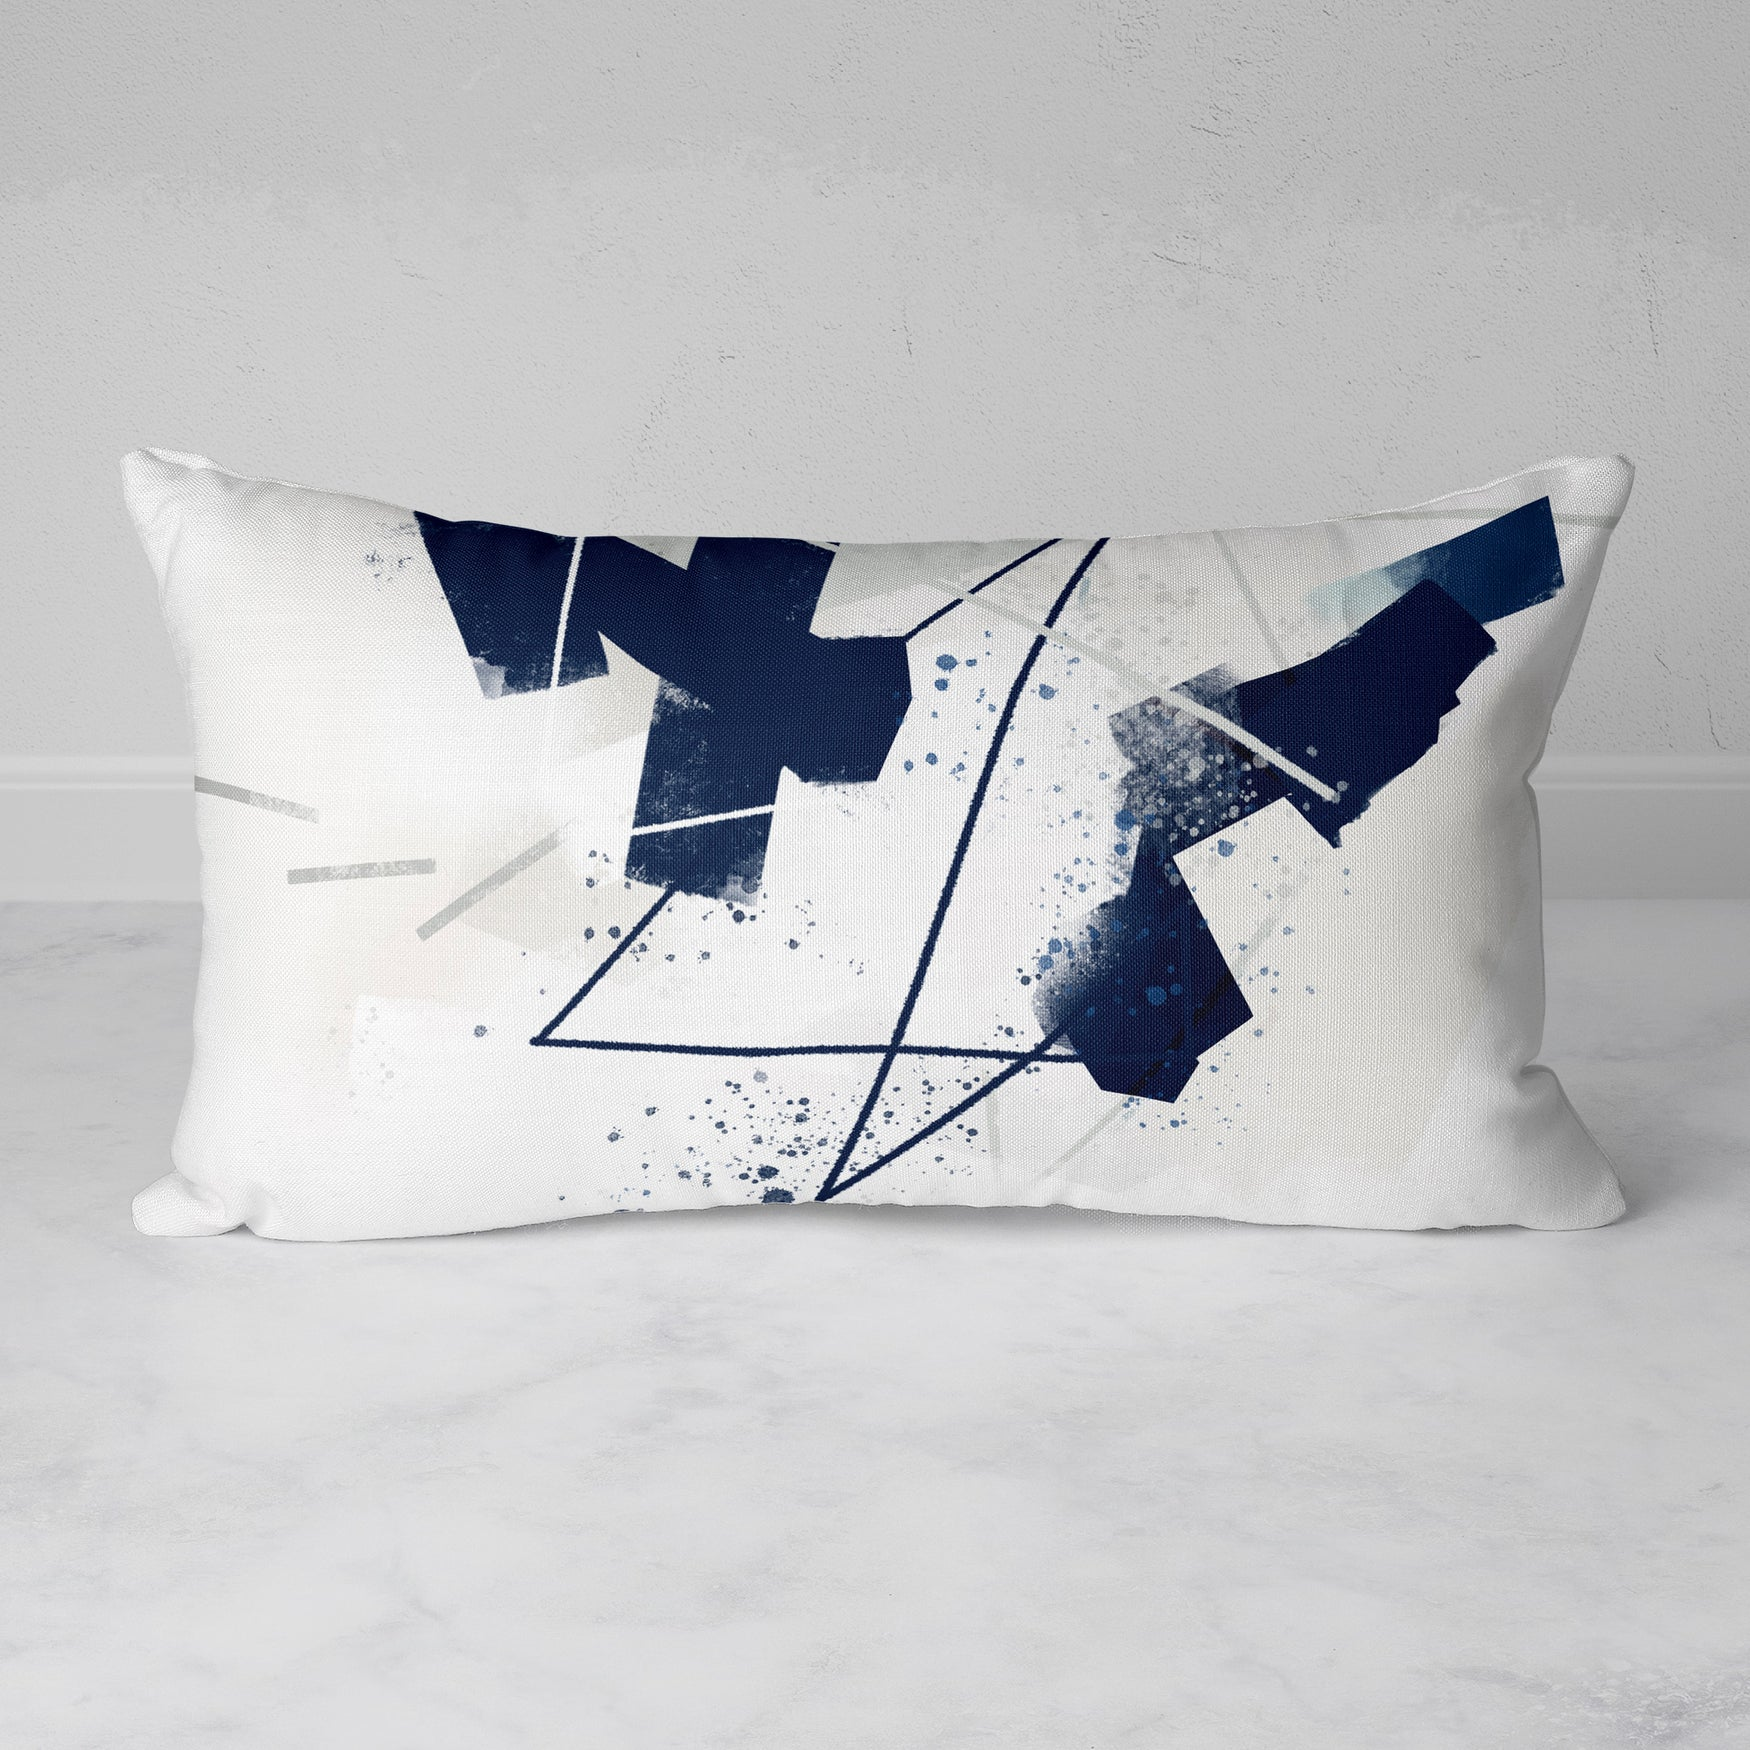 Image of Reckless Abandon Rectangular Throw Pillow